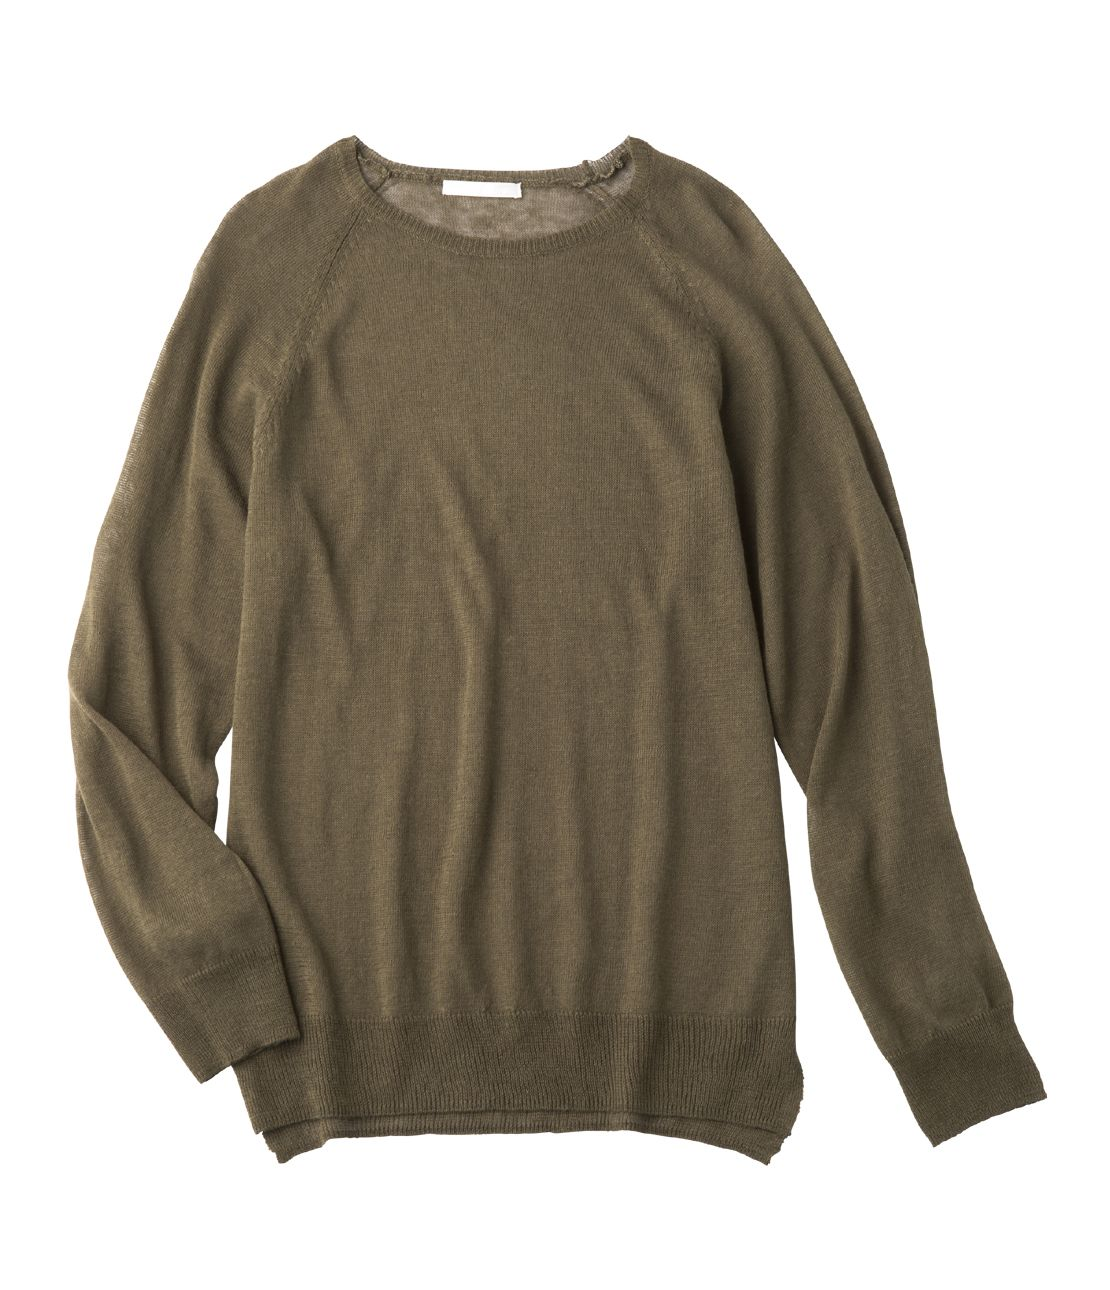 Washable linen blend sweater